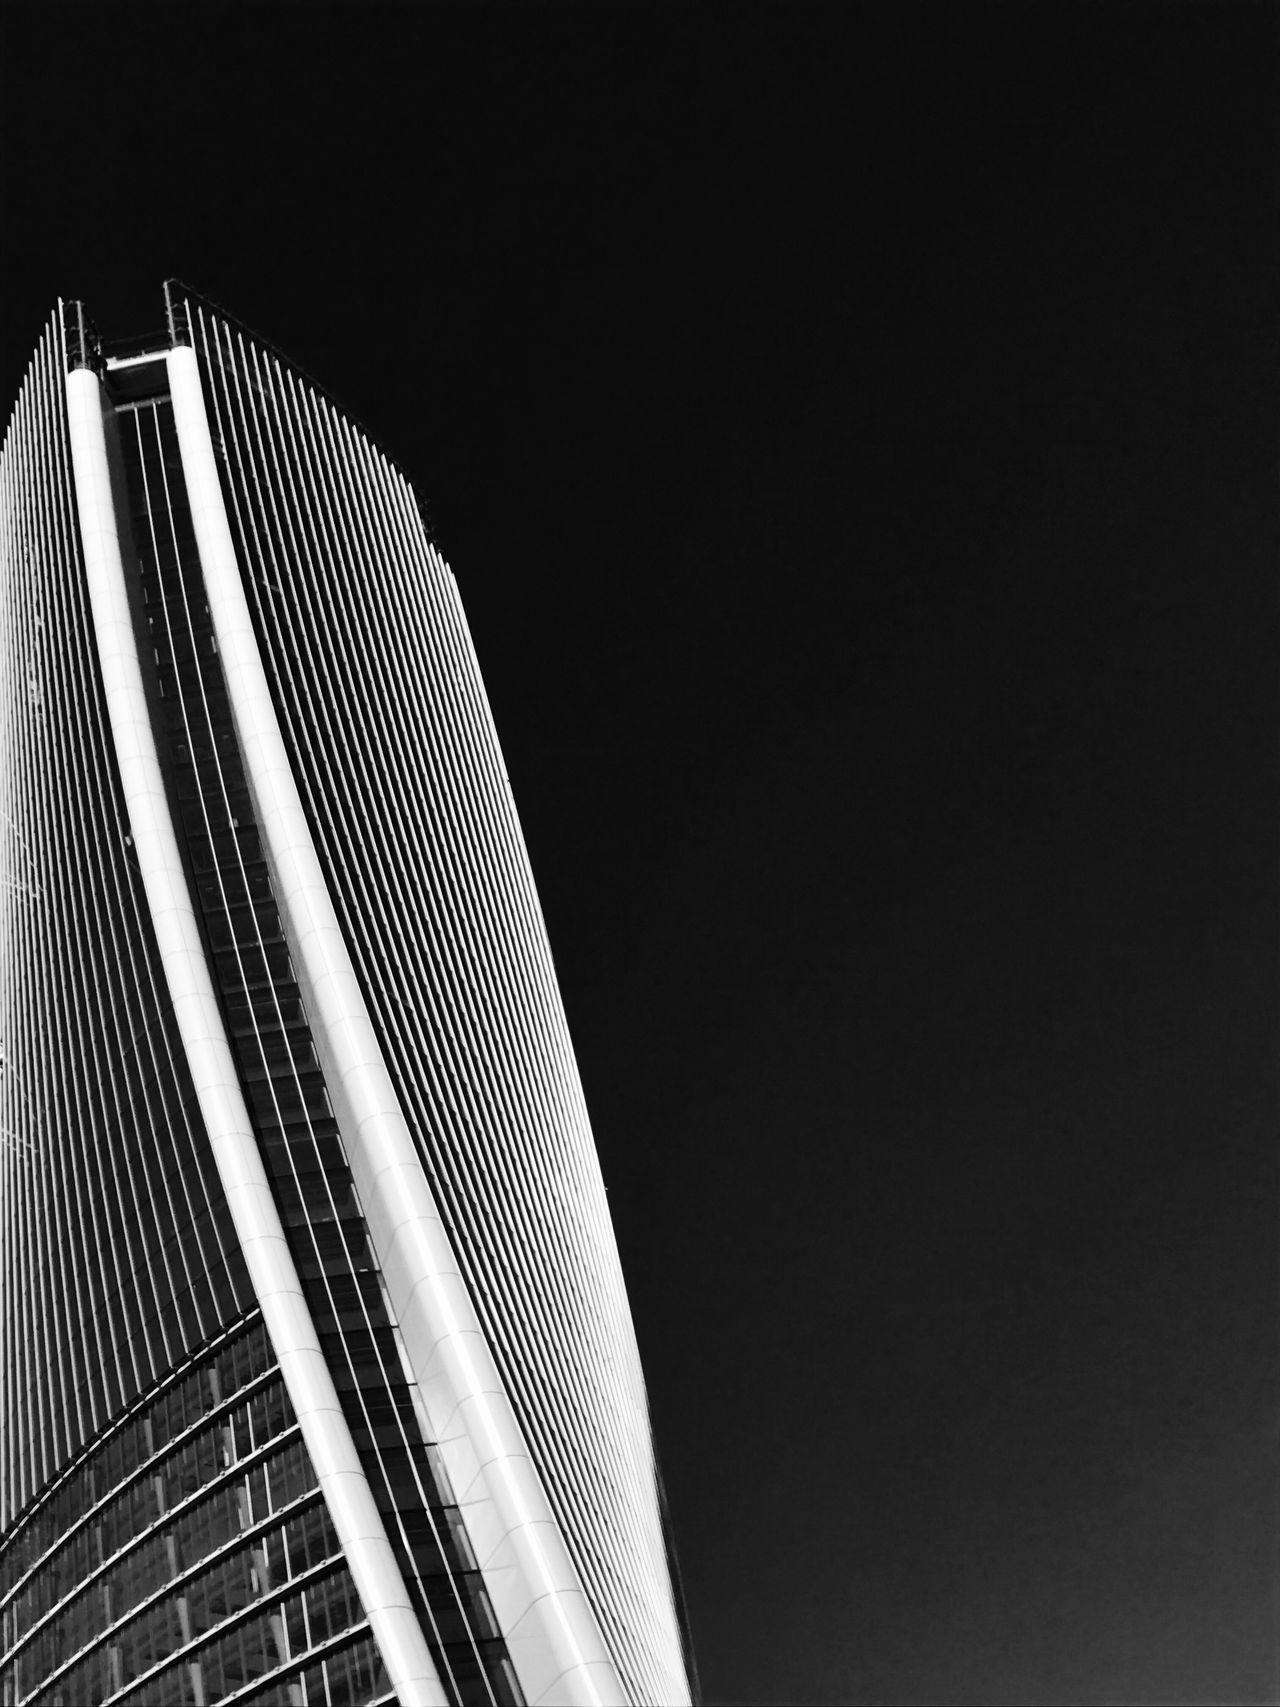 Architecture Built Structure Low Angle View Building Exterior Modern No People City Outdoors Day Architectureporn Architecture_bw Architecturelovers Architecture_collection Bw_collection Urban Geometry Shades Of Grey Streetphoto_bw Minimalism Minimal Blackandwhite Architectural Feature Skyscraper Minimalistic Minimalmood Abstractarchitecture